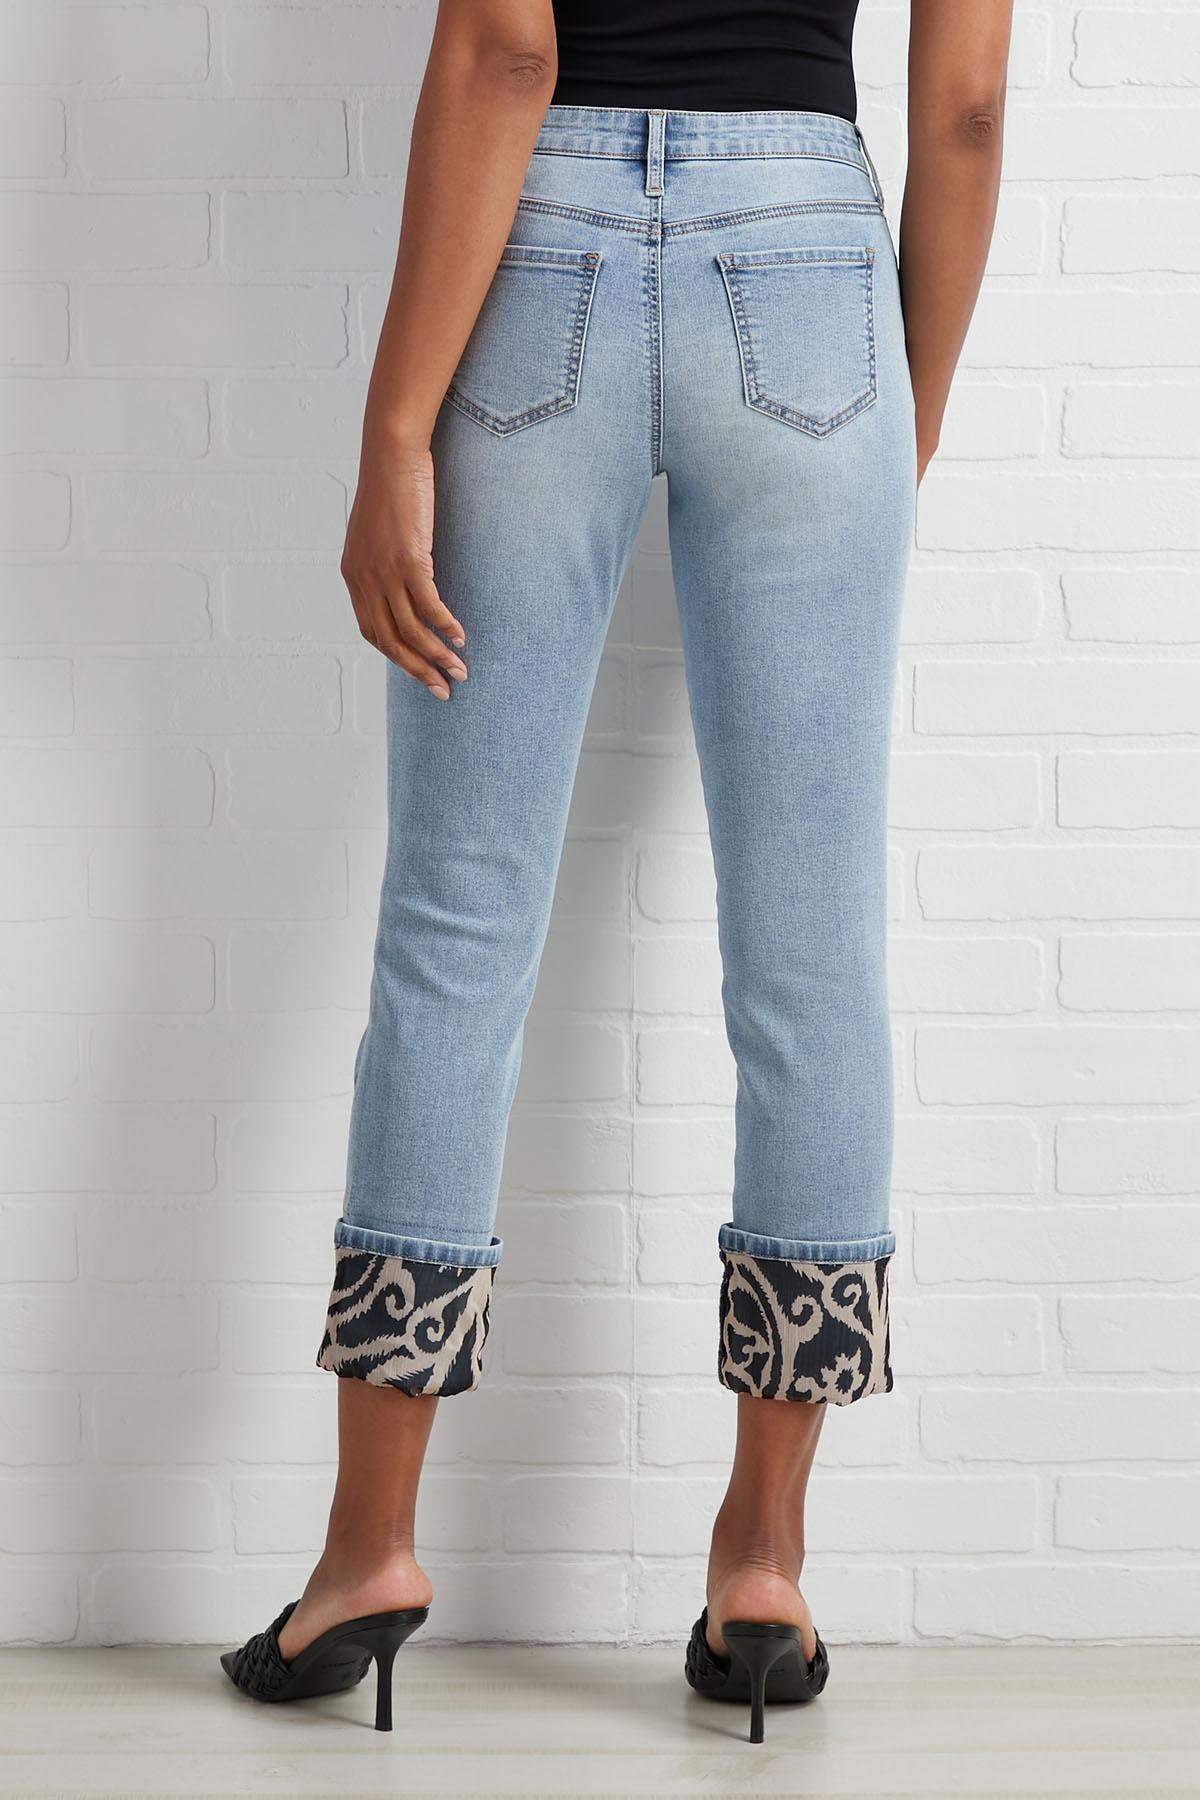 Dropping Prints Jeans